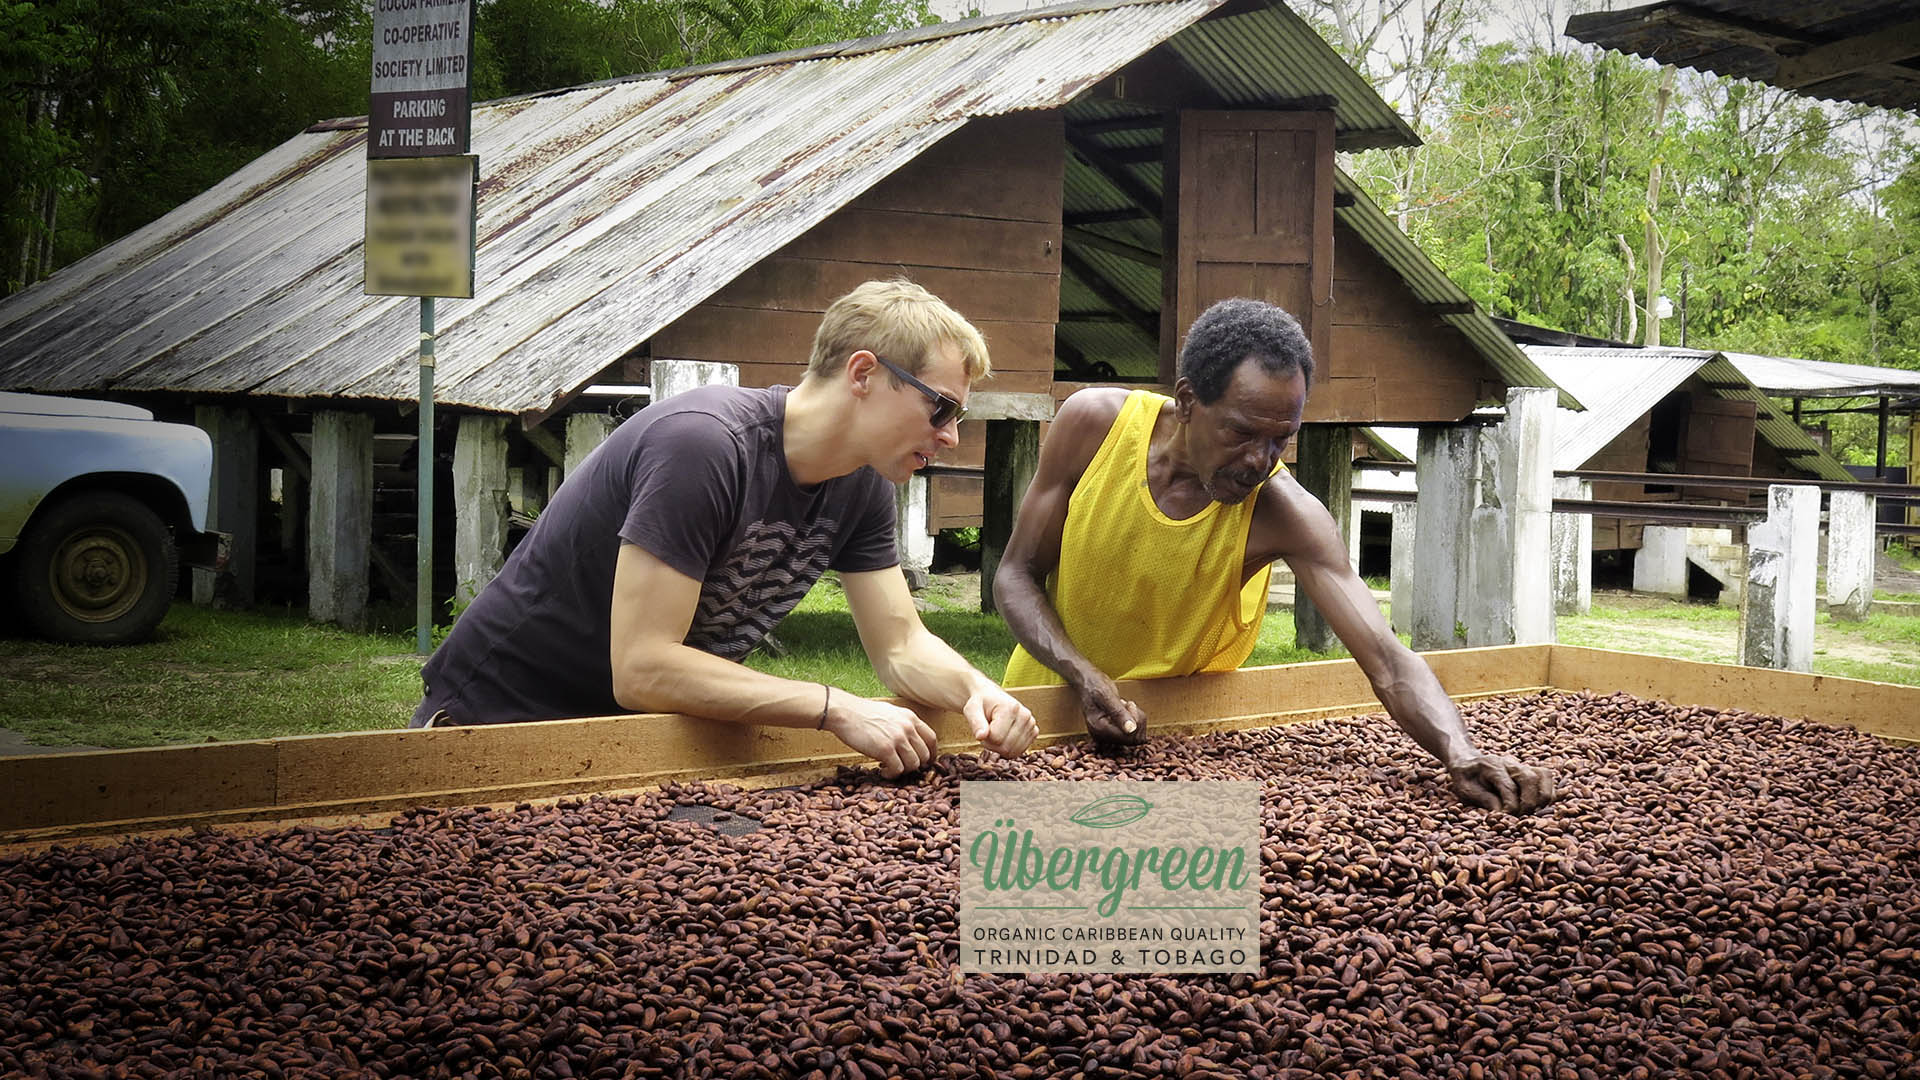 F/S – Organic Cocoa Beans from Trinidad